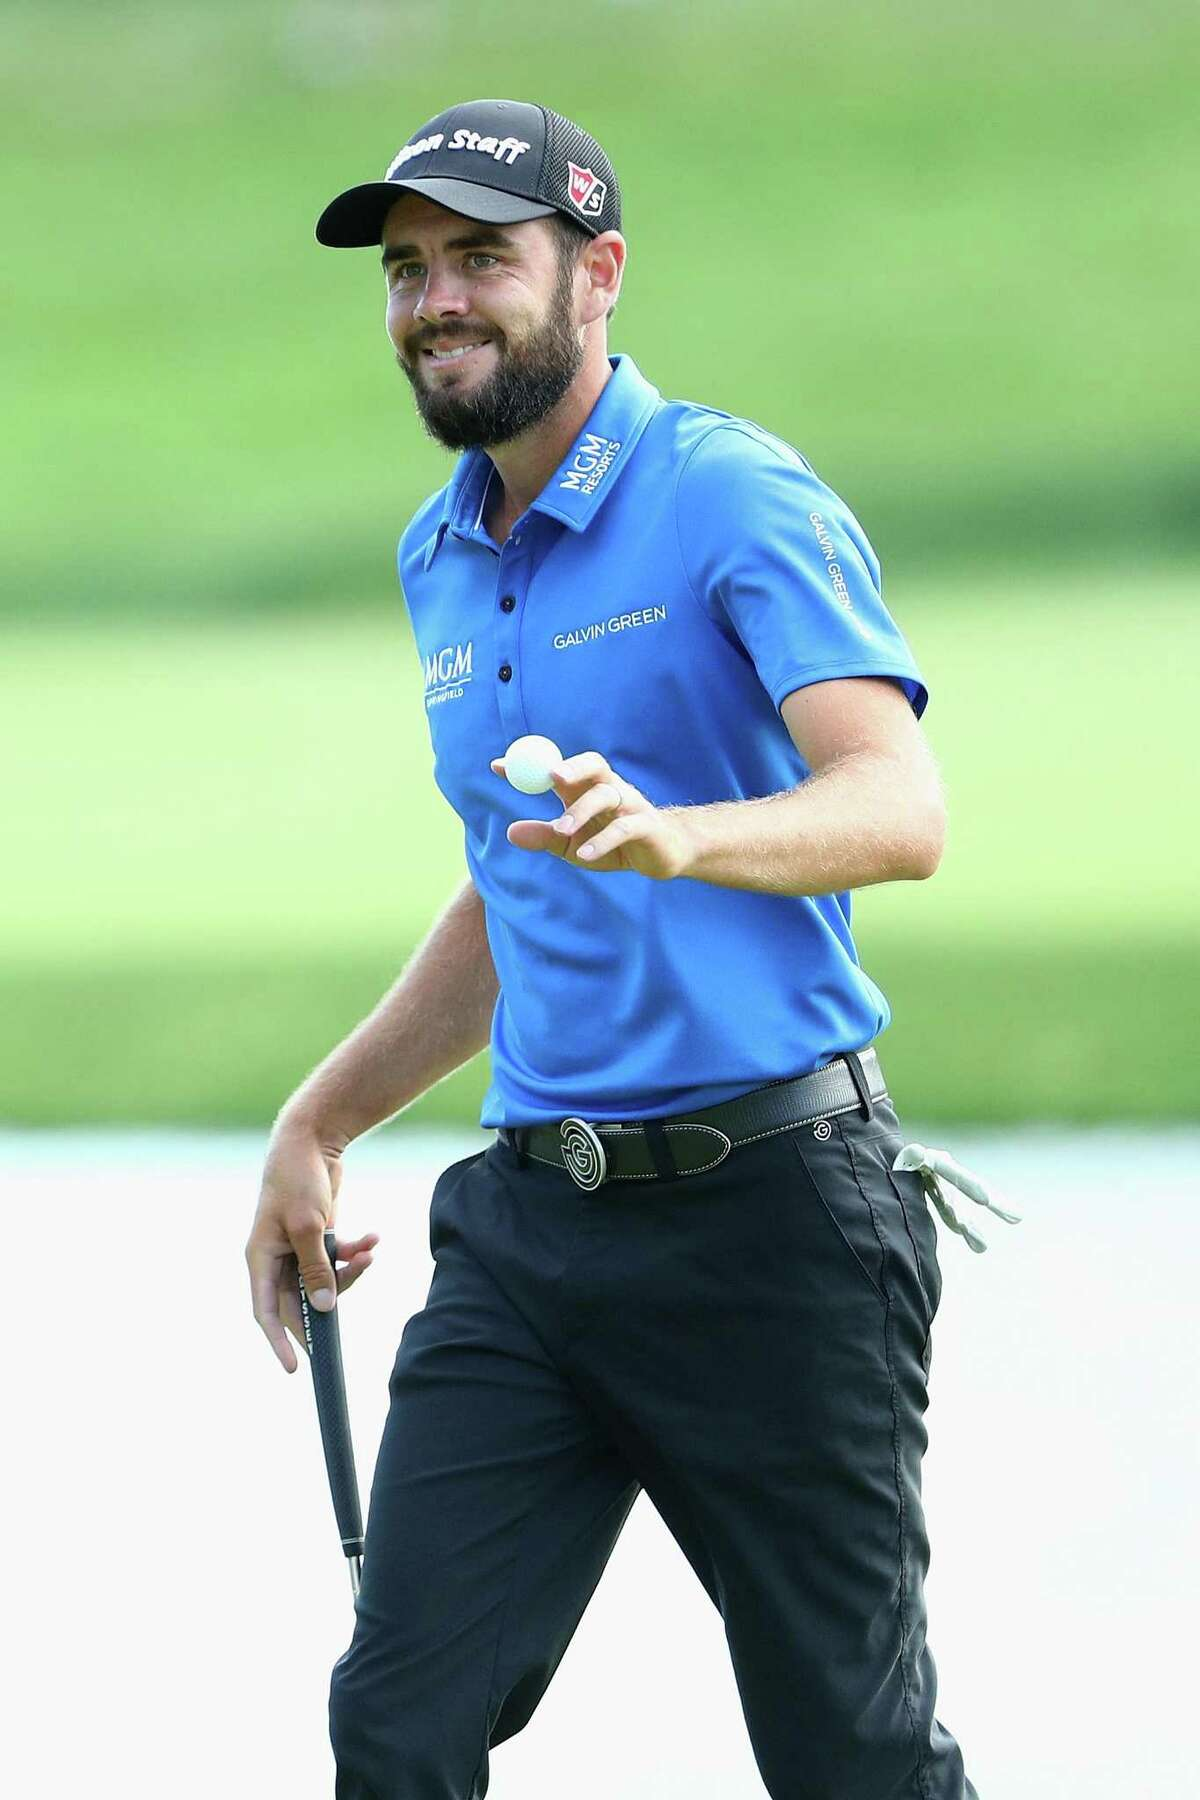 Troy Merritt reacts to his putt on the 17th green during the first round of the Travelers Championship on Thursday in Cromwell.